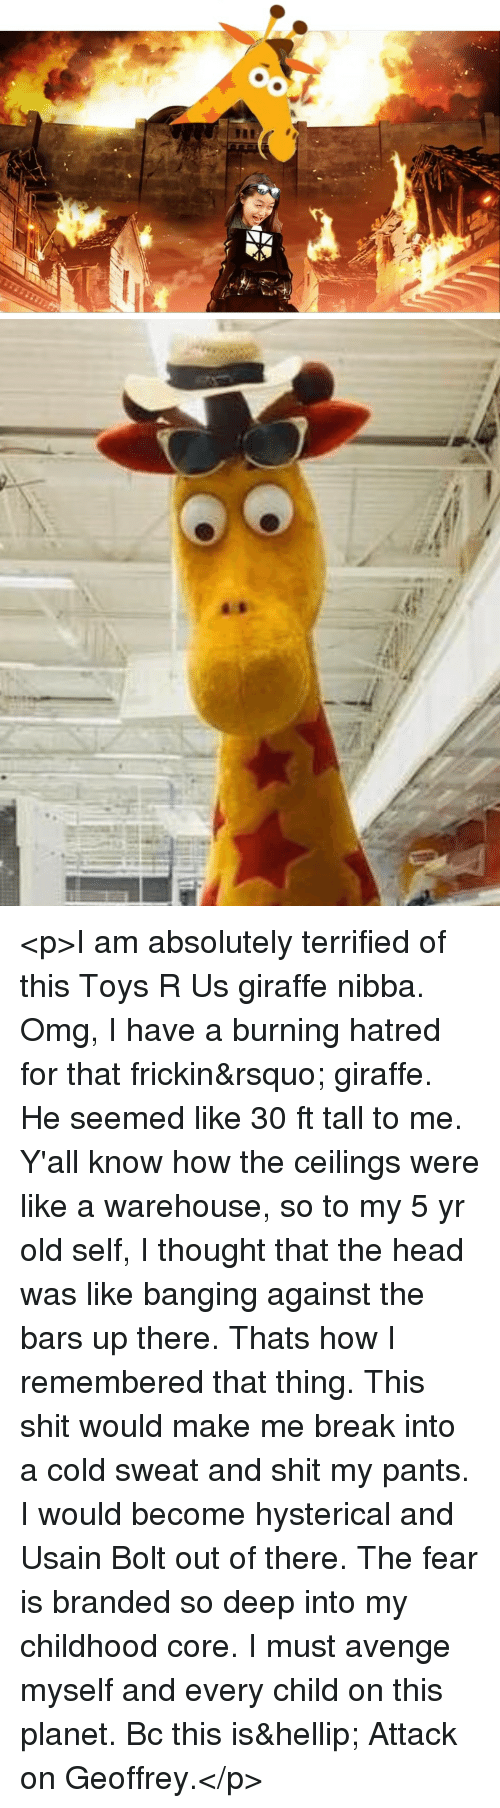 Warehouse: <p>I am absolutely terrified of this Toys R Us giraffe nibba. Omg, I have a burning hatred for that frickin&rsquo; giraffe. He seemed like 30 ft tall to me. Y'all know how the ceilings were like a warehouse, so to my 5 yr old self, I thought that the head was like banging against the bars up there. Thats how I remembered that thing. This shit would make me break into a cold sweat and shit my pants. I would become hysterical and Usain Bolt out of there. The fear is branded so deep into my childhood core. I must avenge myself and every child on this planet. Bc this is&hellip; Attack on Geoffrey.</p>